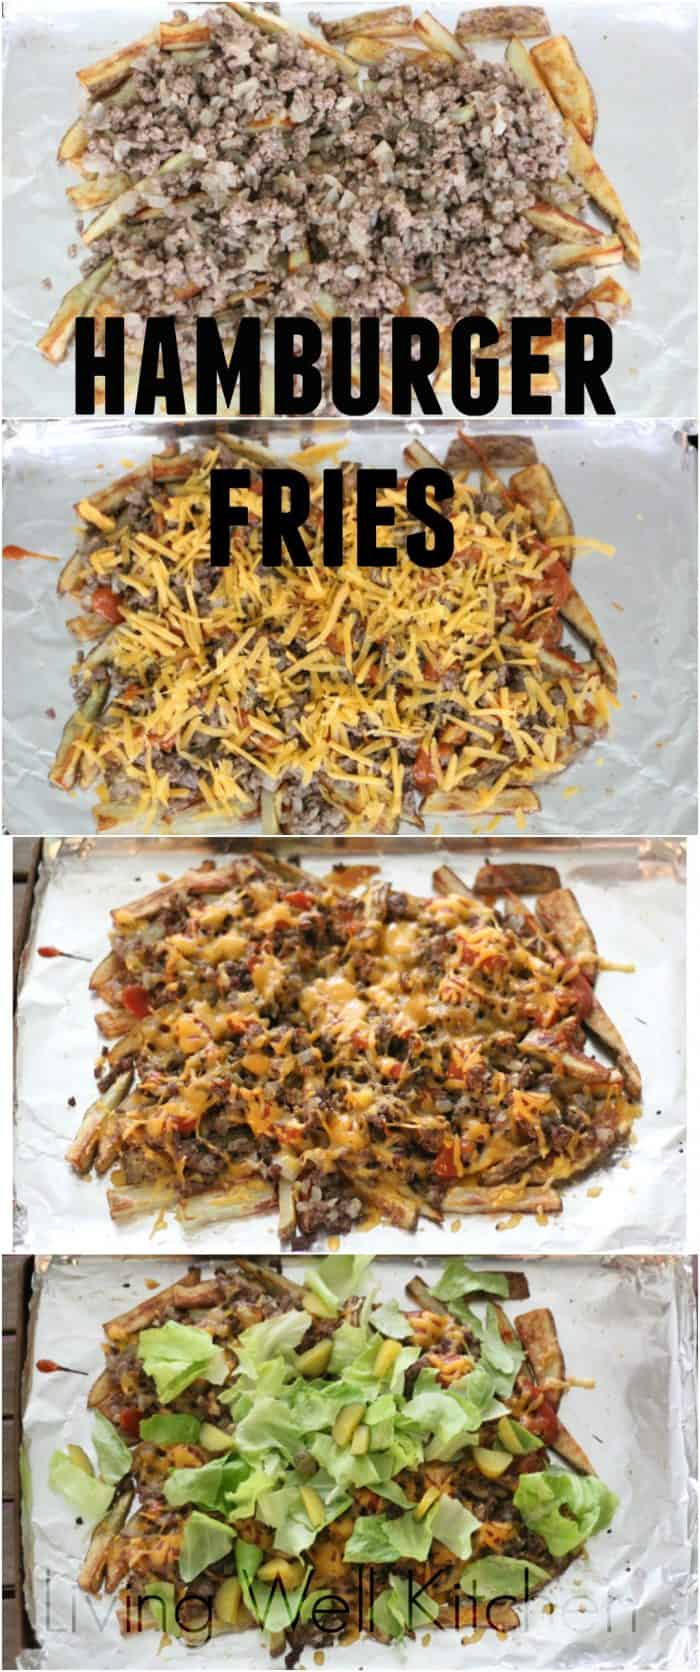 A fun take on a classic pair, these fries are covered in all your favorite burger toppings. Great to serve to a crowd. Hamburger Fries are gluten free and can be dairy free